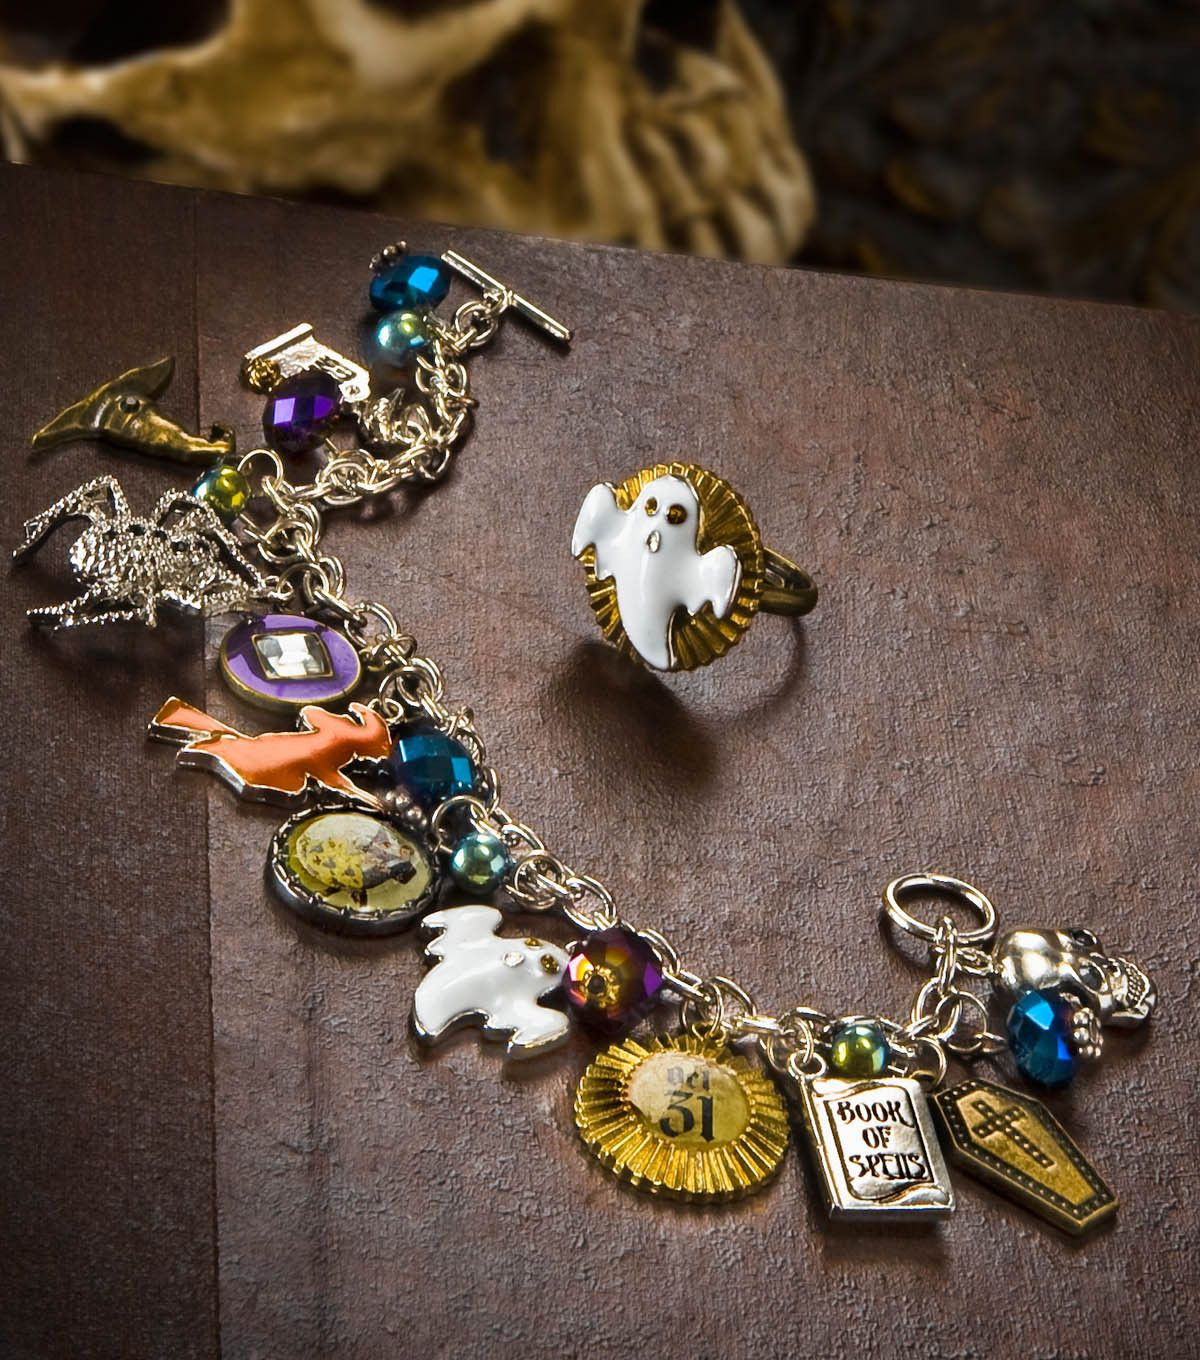 This Halloween charm bracelet and ghost ring set is so cute!